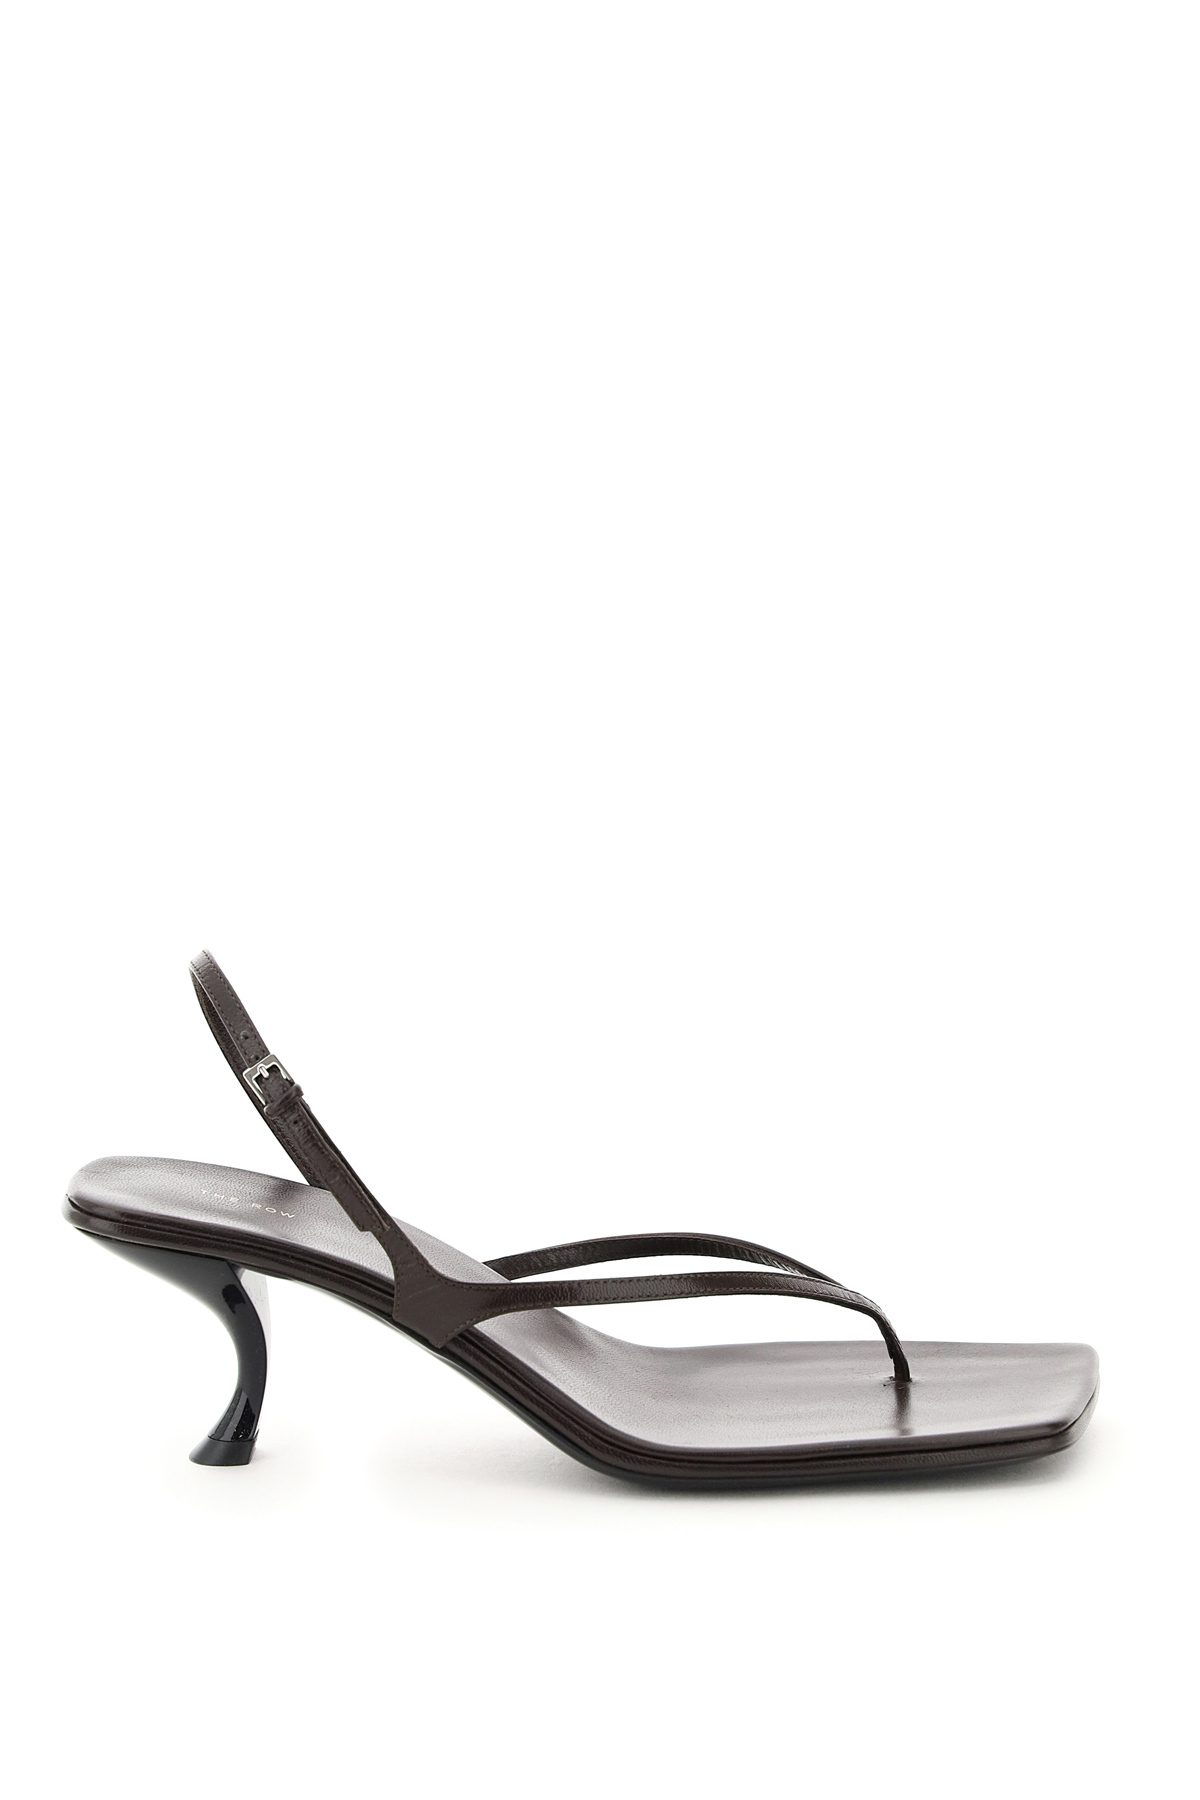 THE ROW CONSTANCE THONG SANDALS 38 Brown Leather